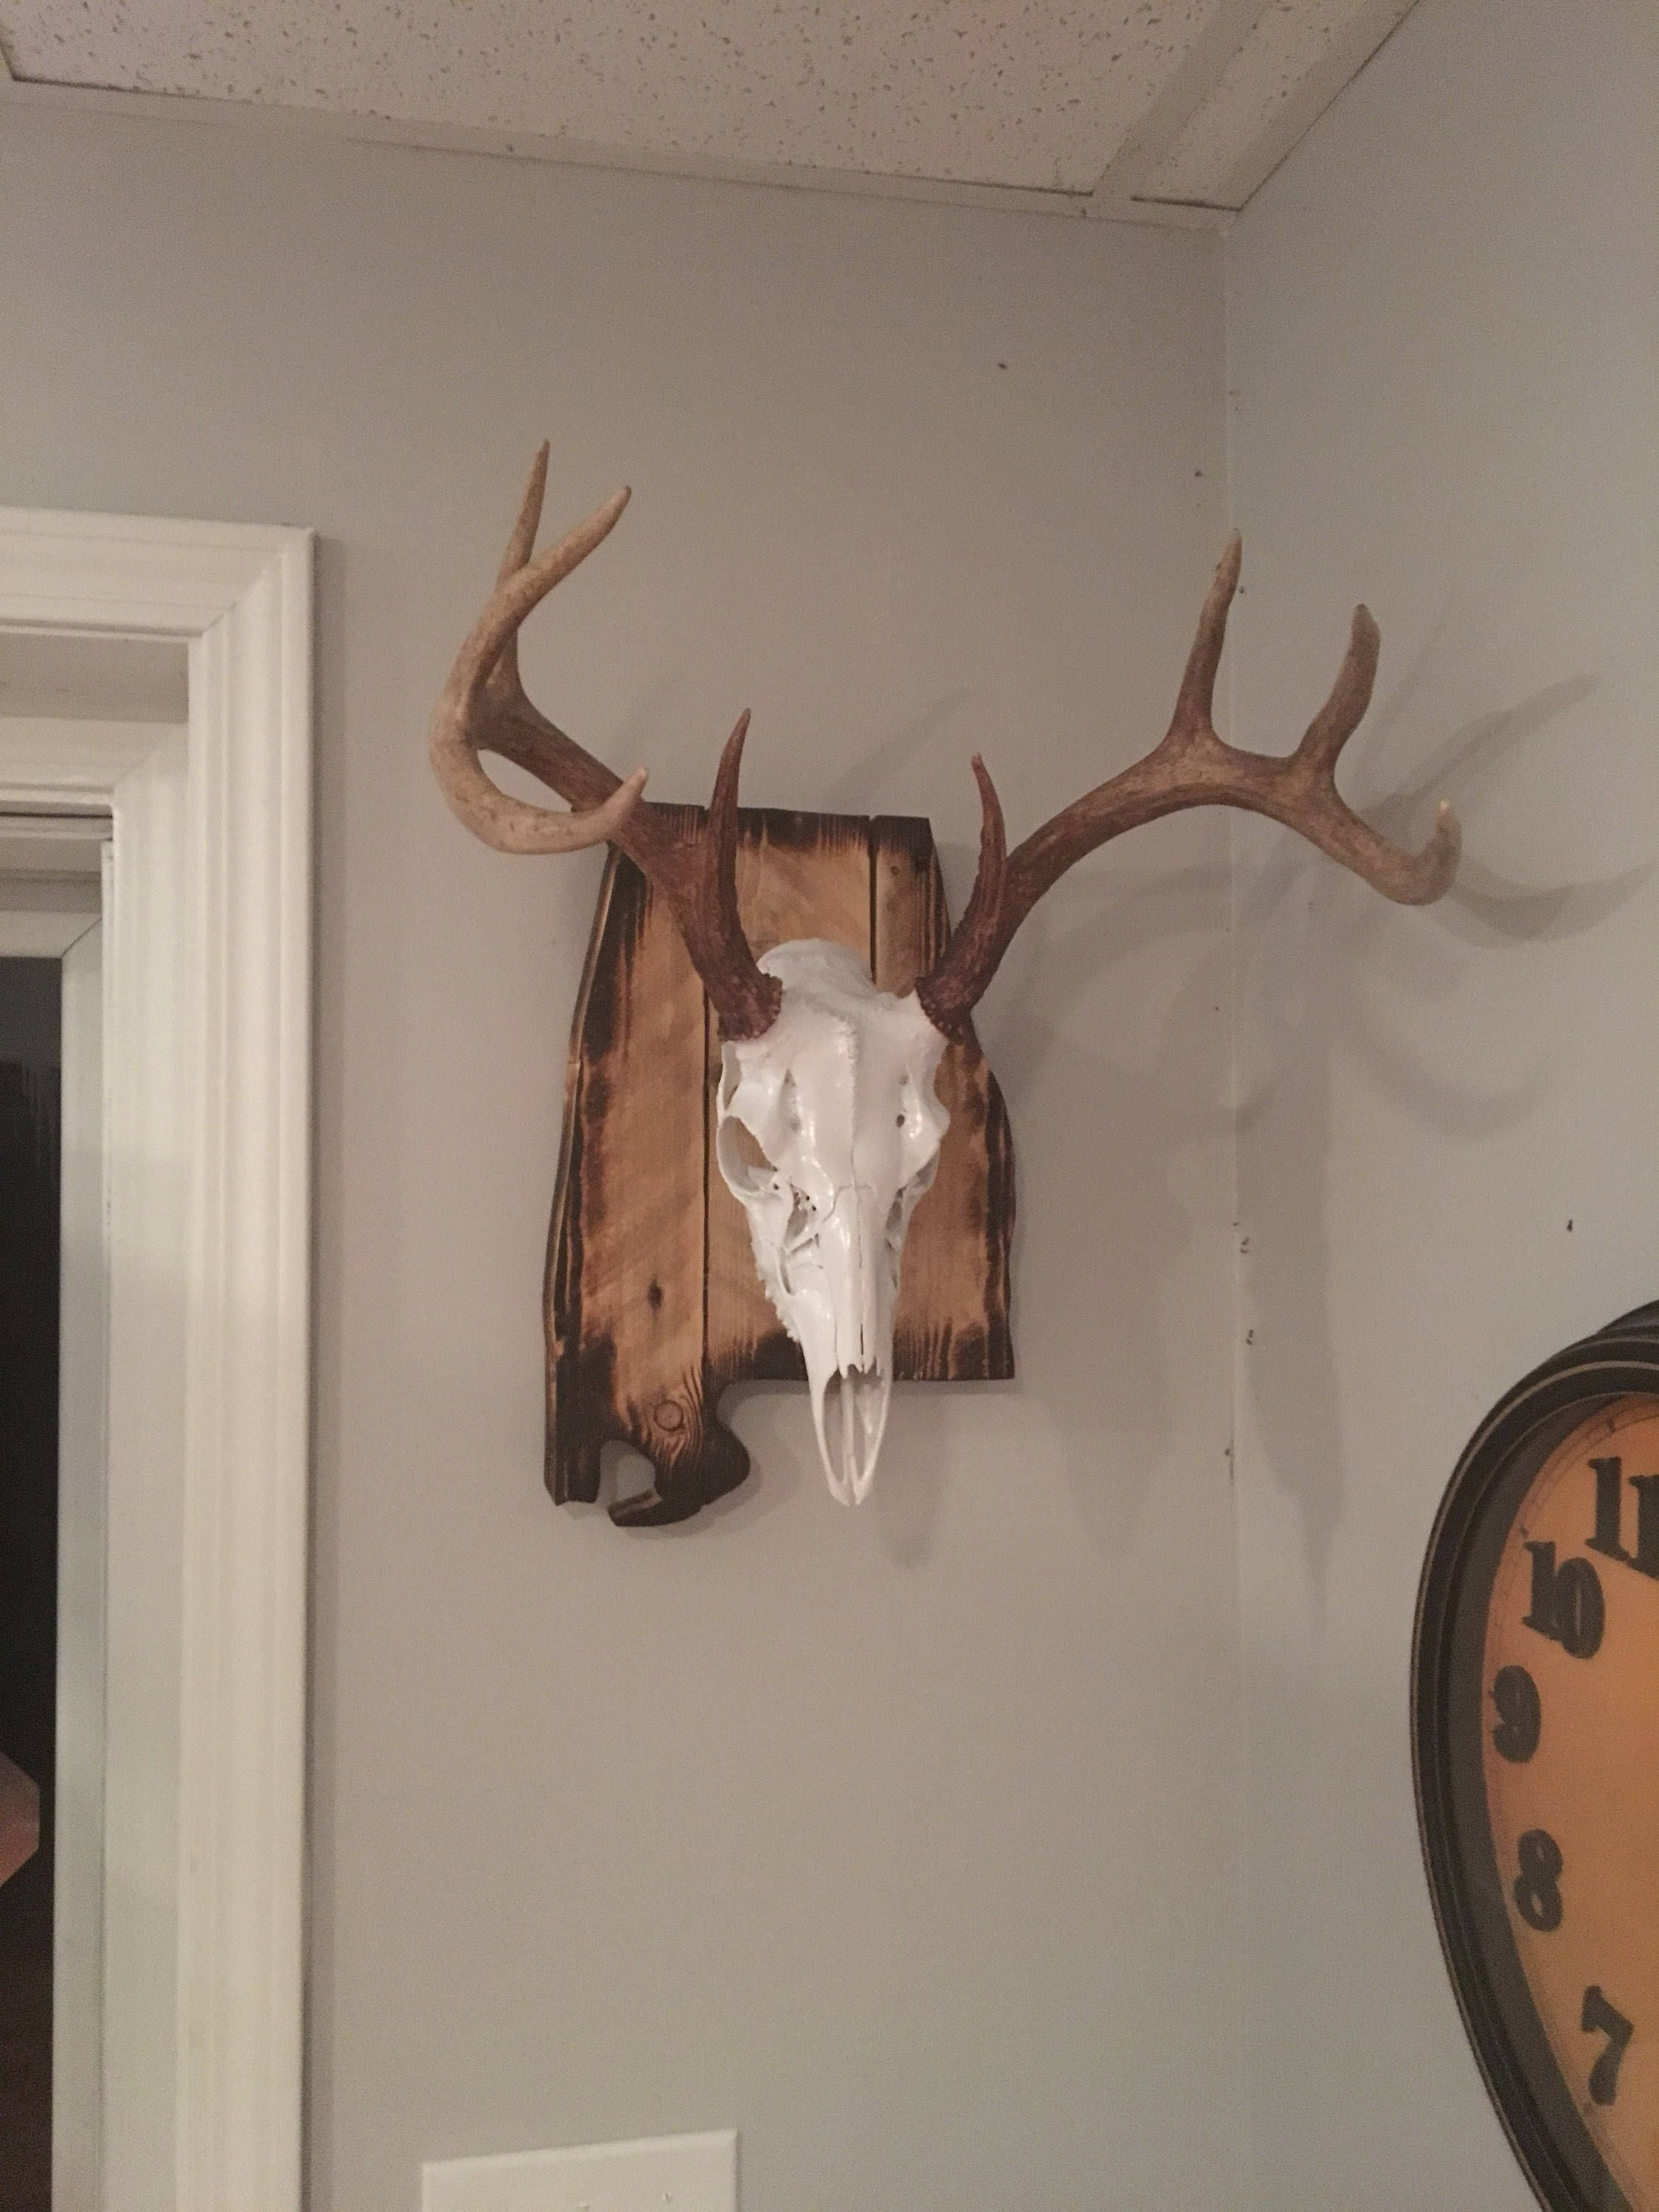 Excited To Share The Latest Addition To My Etsy Shop Alabama State Europeon Mount Plaque Http Etsy Me 2hv3b7g Deer Mount Decor Deer Antler Decor Deer Decor